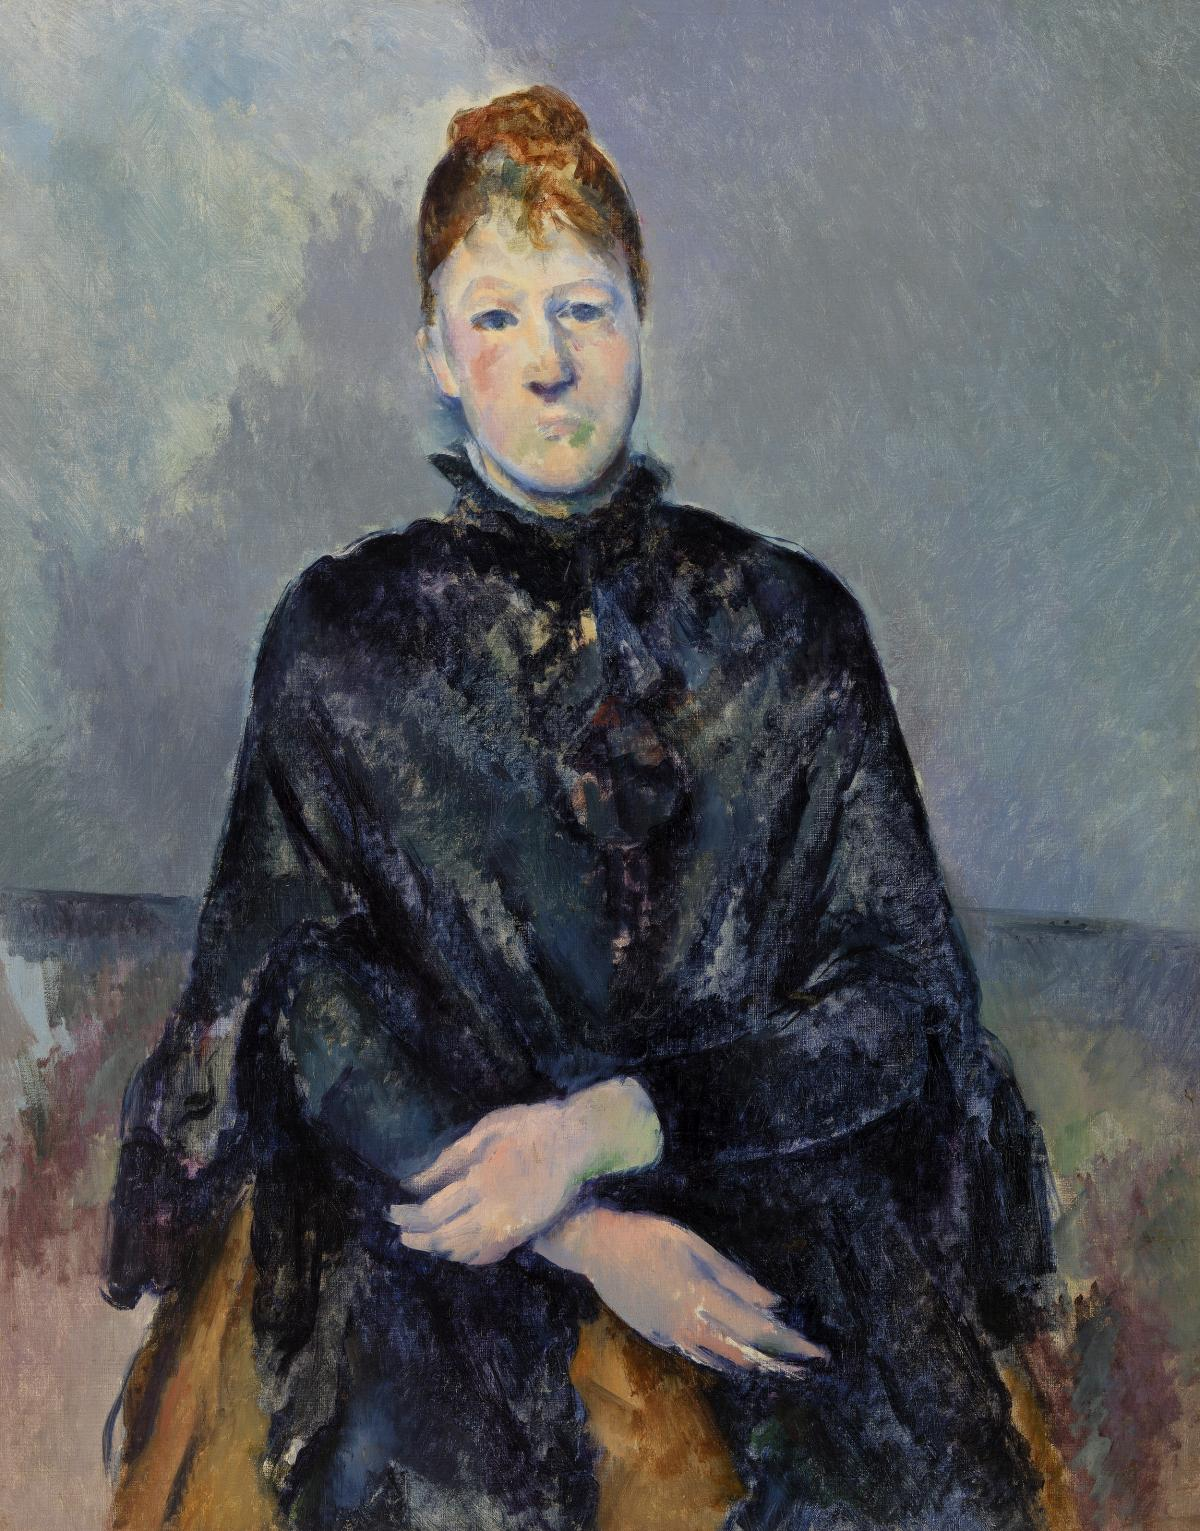 Madame Cézanne (Portrait de Madame Cézanne) (ca. 1888–1890) by Paul Cézanne. Original from Original from Barnes Foundation.  #426043